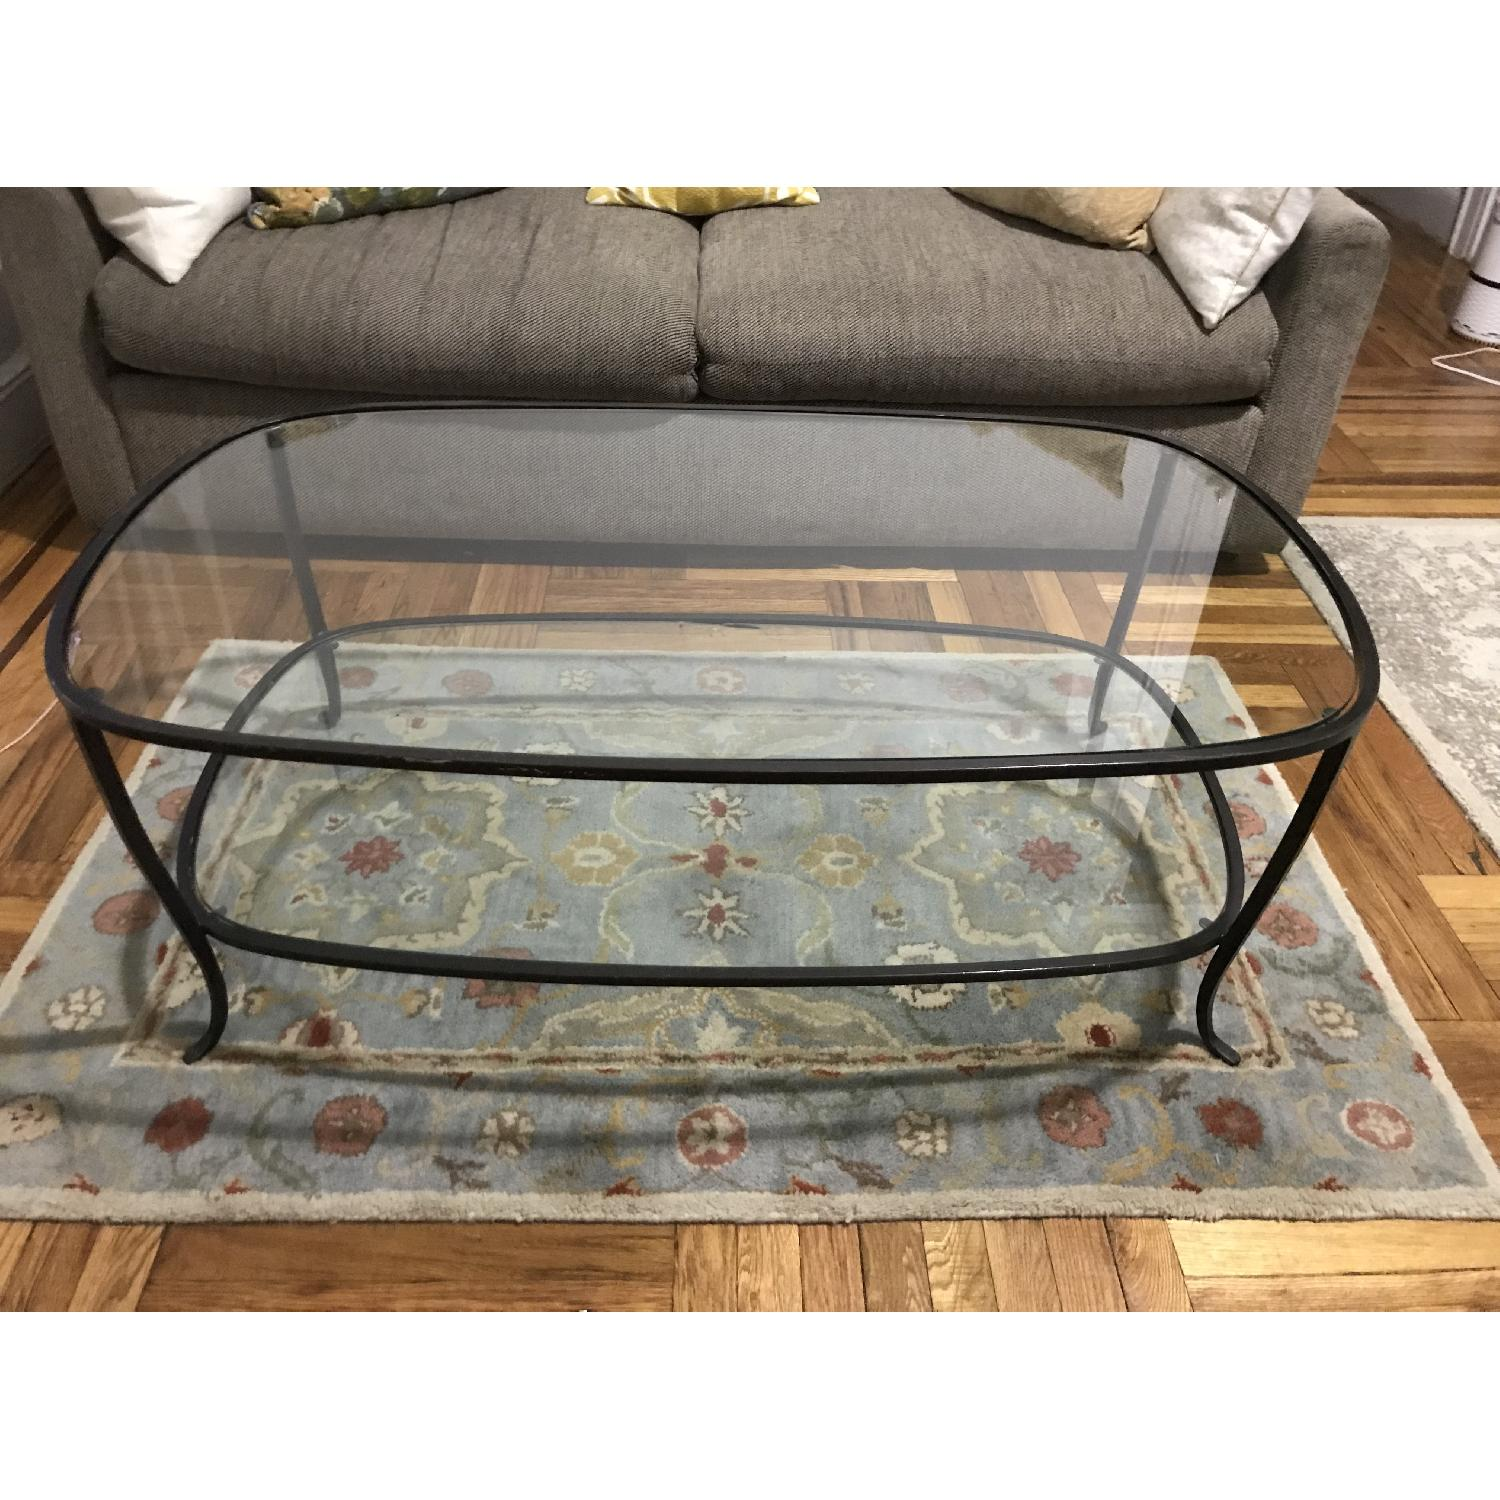 Pottery Barn Glass w/ Cast Iron Frame Coffee Table-2